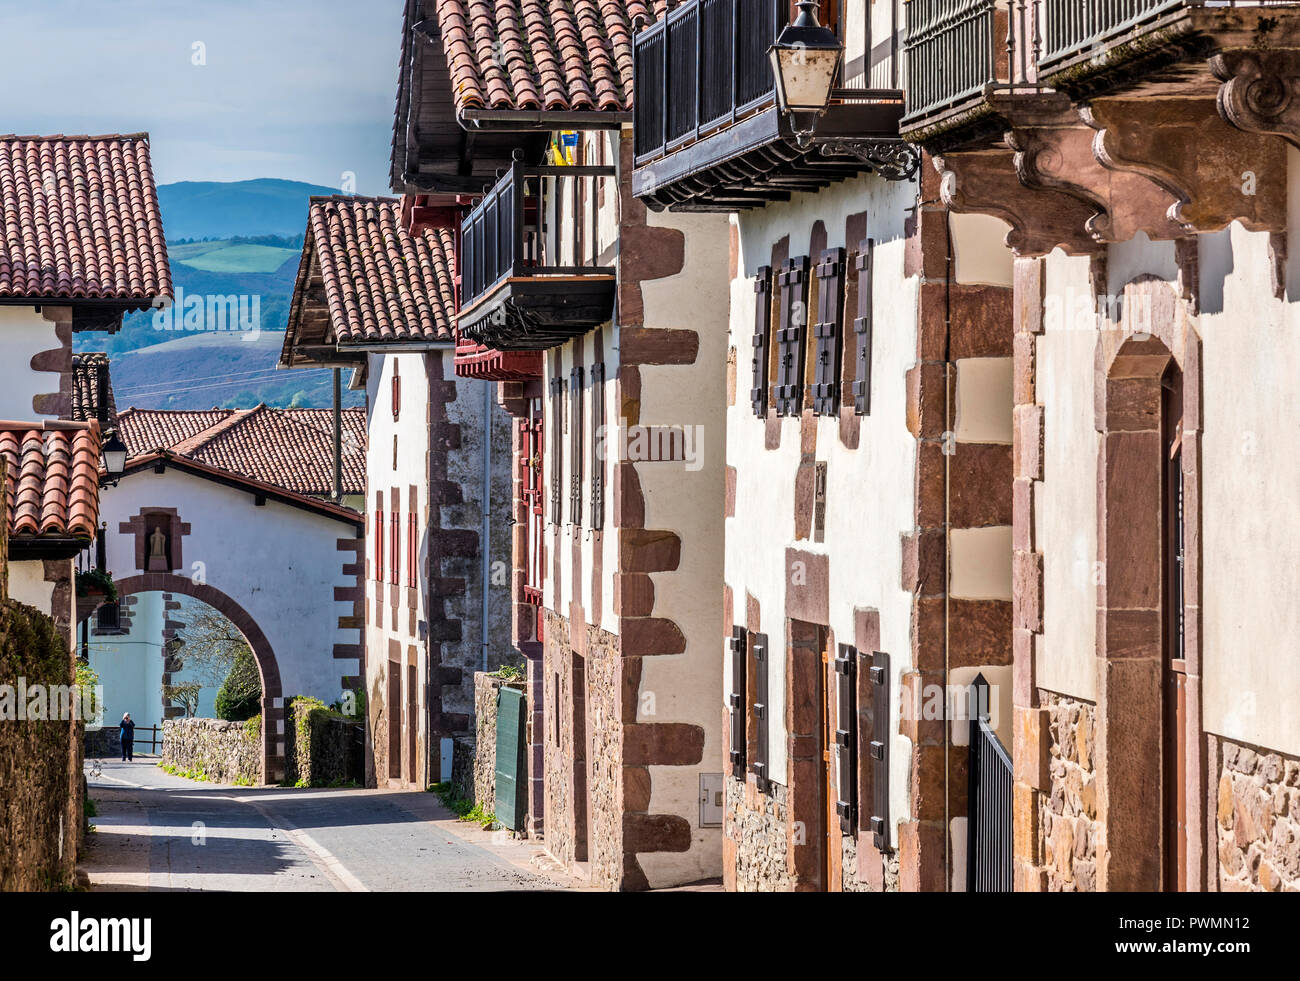 Spain, Navarre, Baztan valley, Amaiur, line of traditional country houses in the main street (Way of Saint James) - Stock Image